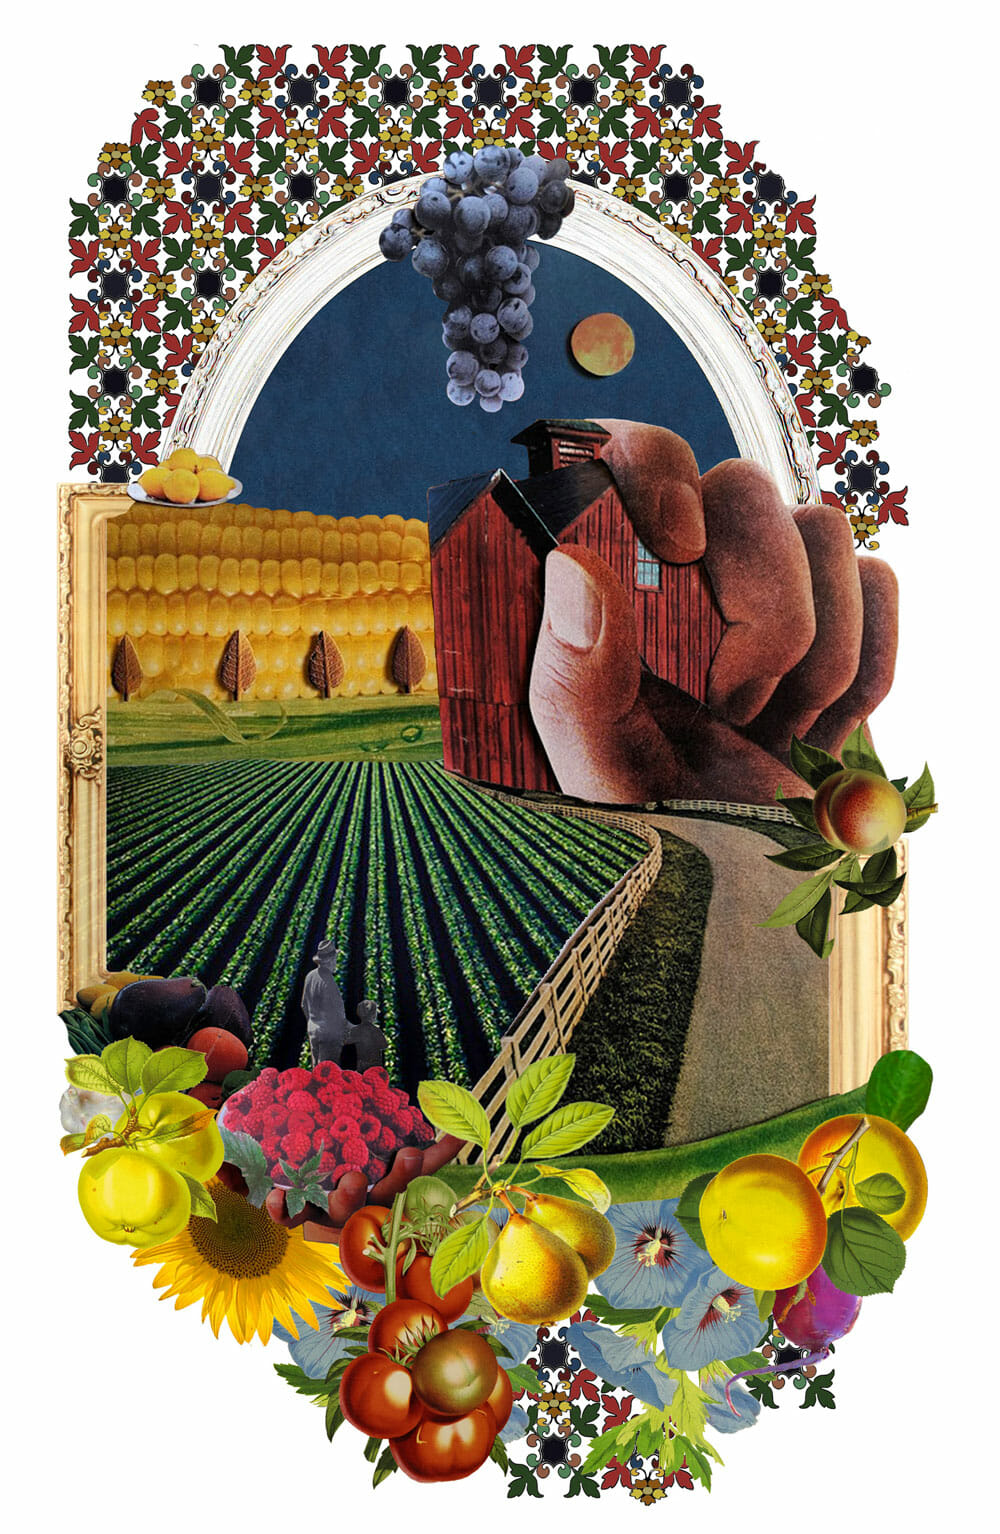 A collage made of colorful farming-related images: A giant hand wraps around a barn in front of a wall made from an ear of corn. Blueberries form a smoking chimney.